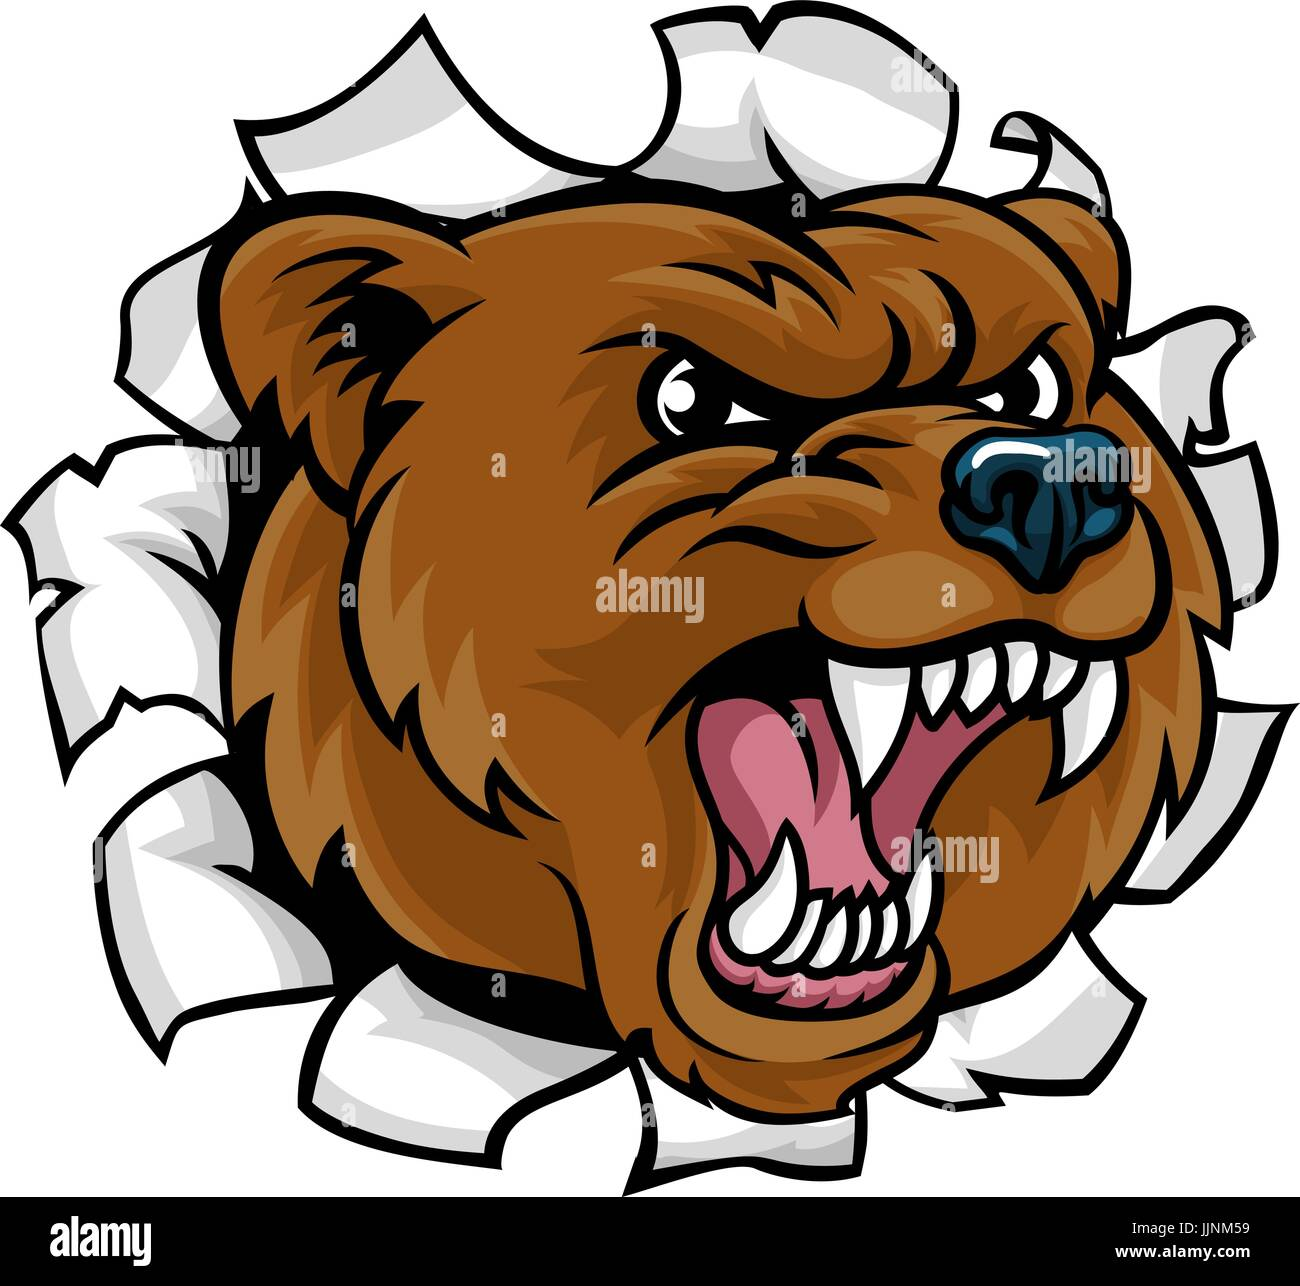 hight resolution of bear angry mascot background breakthrough